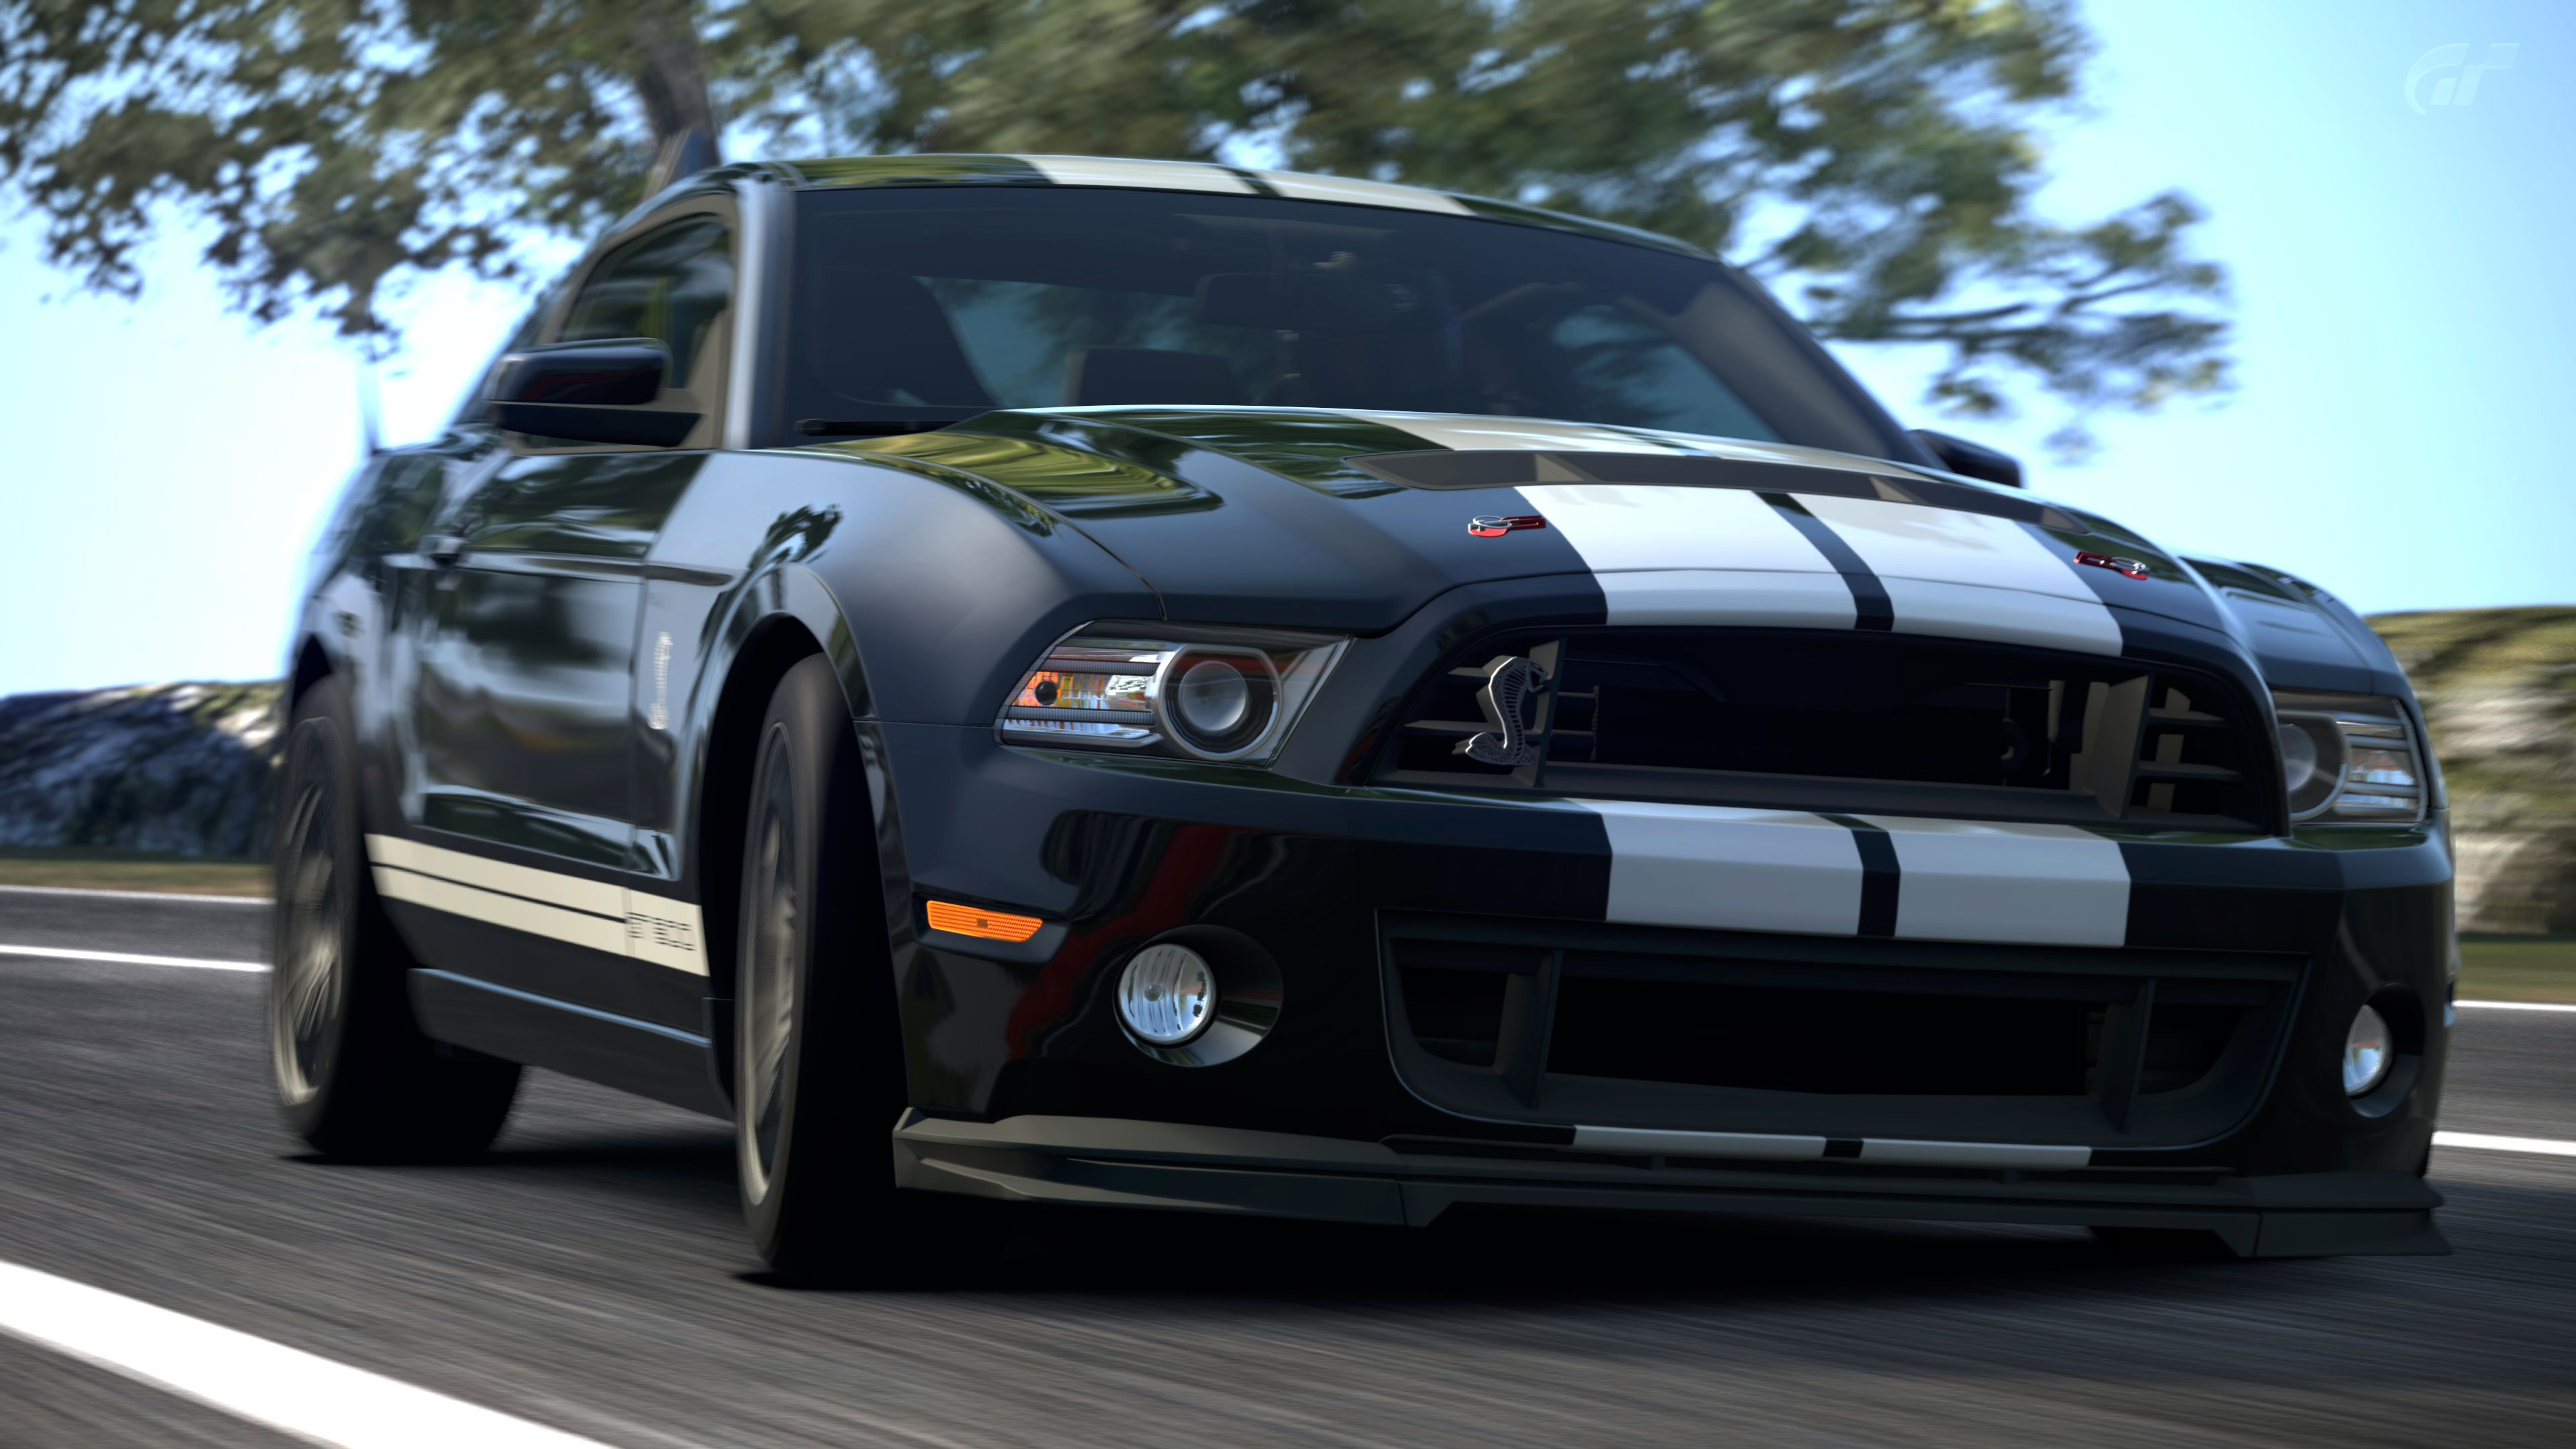 3840x2160 2013 Ford Mustang Shelby GT500 (Gran Turismo 6) by Vertualissimo on ...